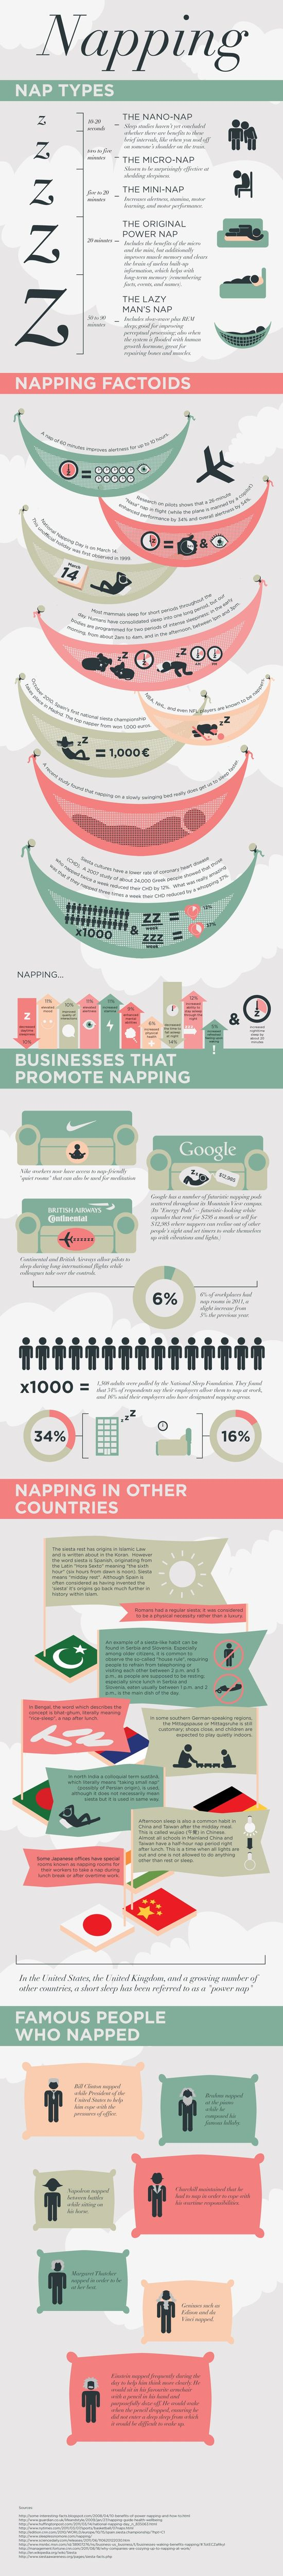 Napping Infographic - Why our offices should have a Nap Room!